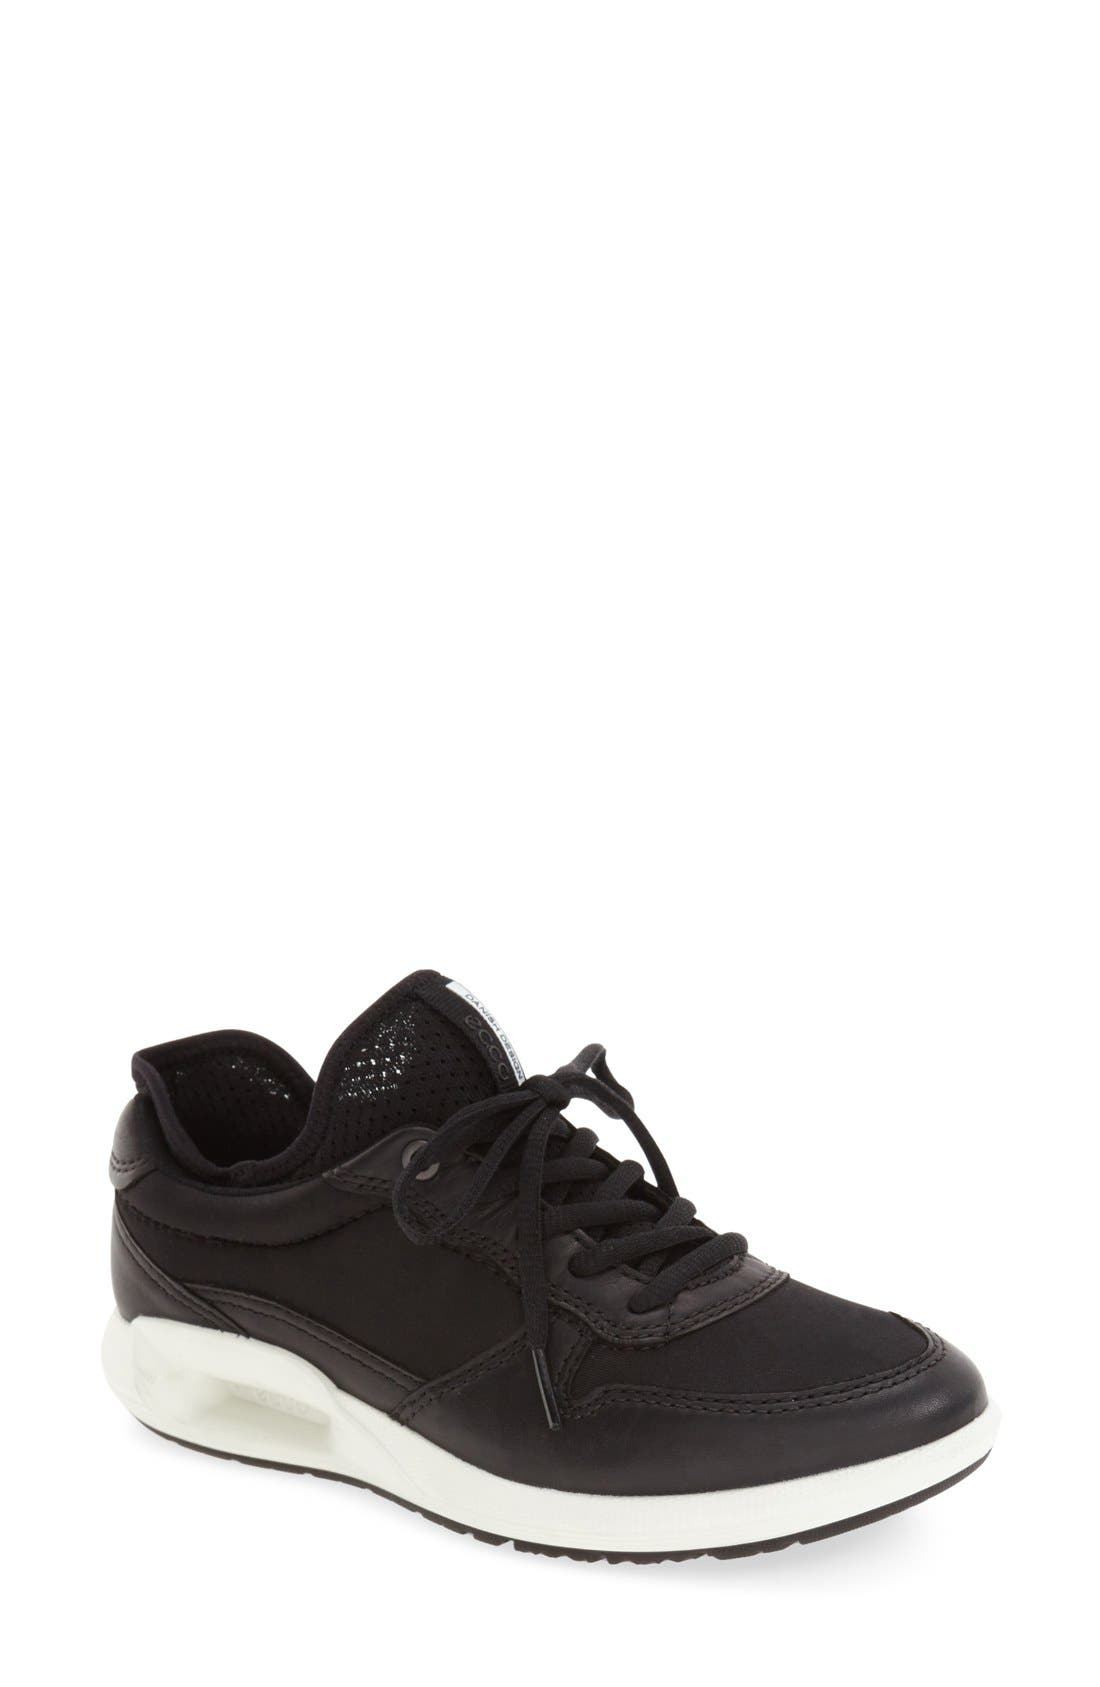 'CS16' Sneaker,                             Main thumbnail 1, color,                             Black Leather